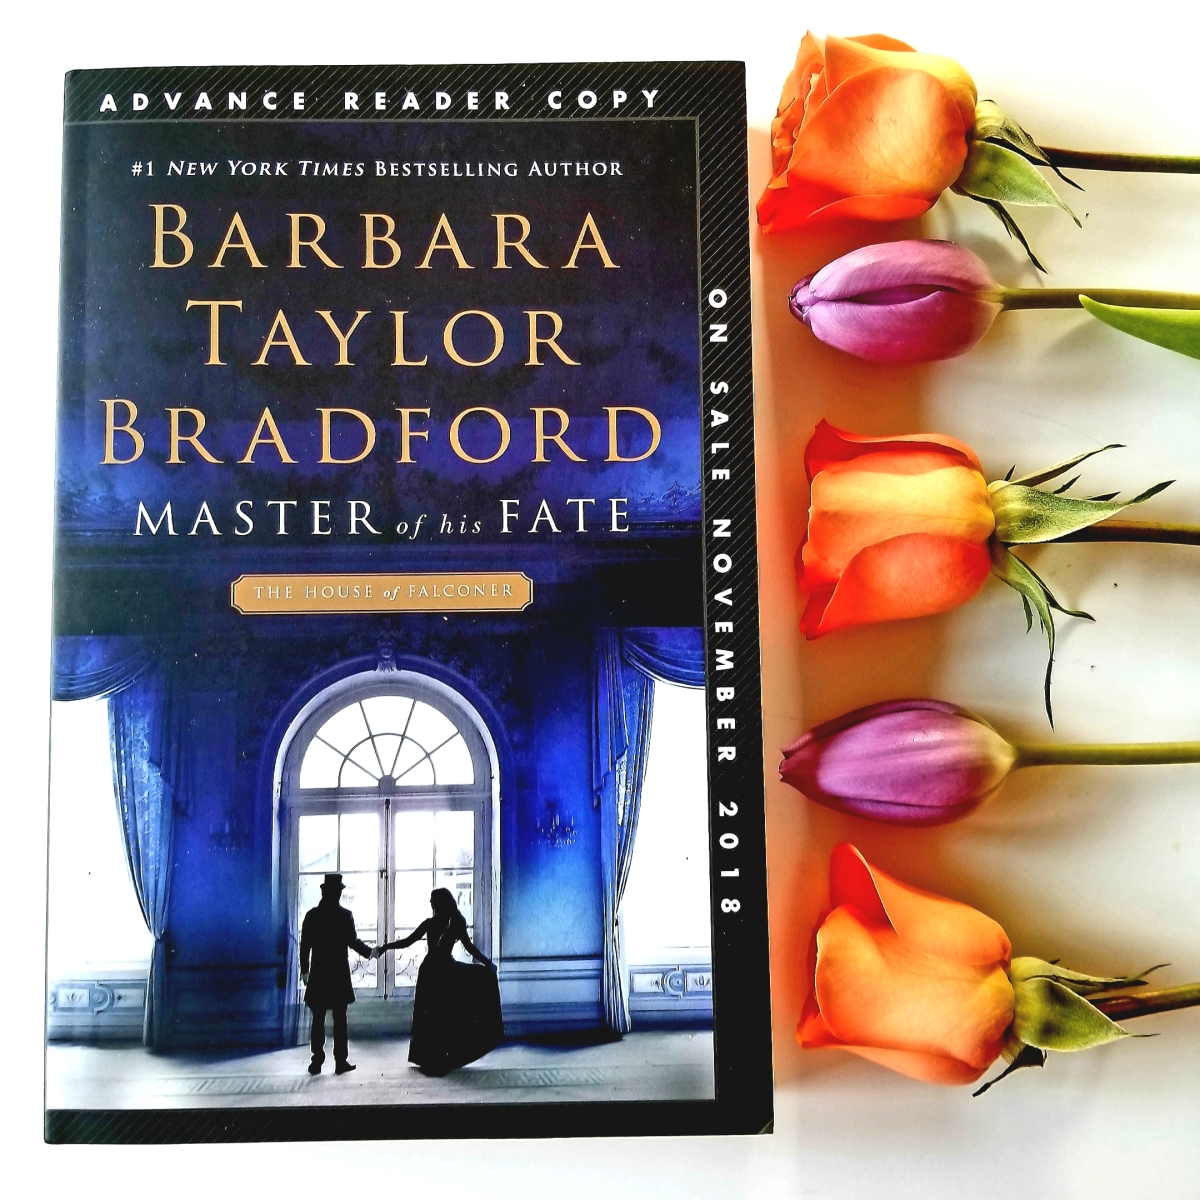 First Line Fridays: Master of His Fate by Barbara Taylor Bradford #firstlinefridays #tarheelreader #thrmasterfate @BTBNovelist @stmartinspress @annmarienieves @suzyapproved #masterofhisfate #blogtour